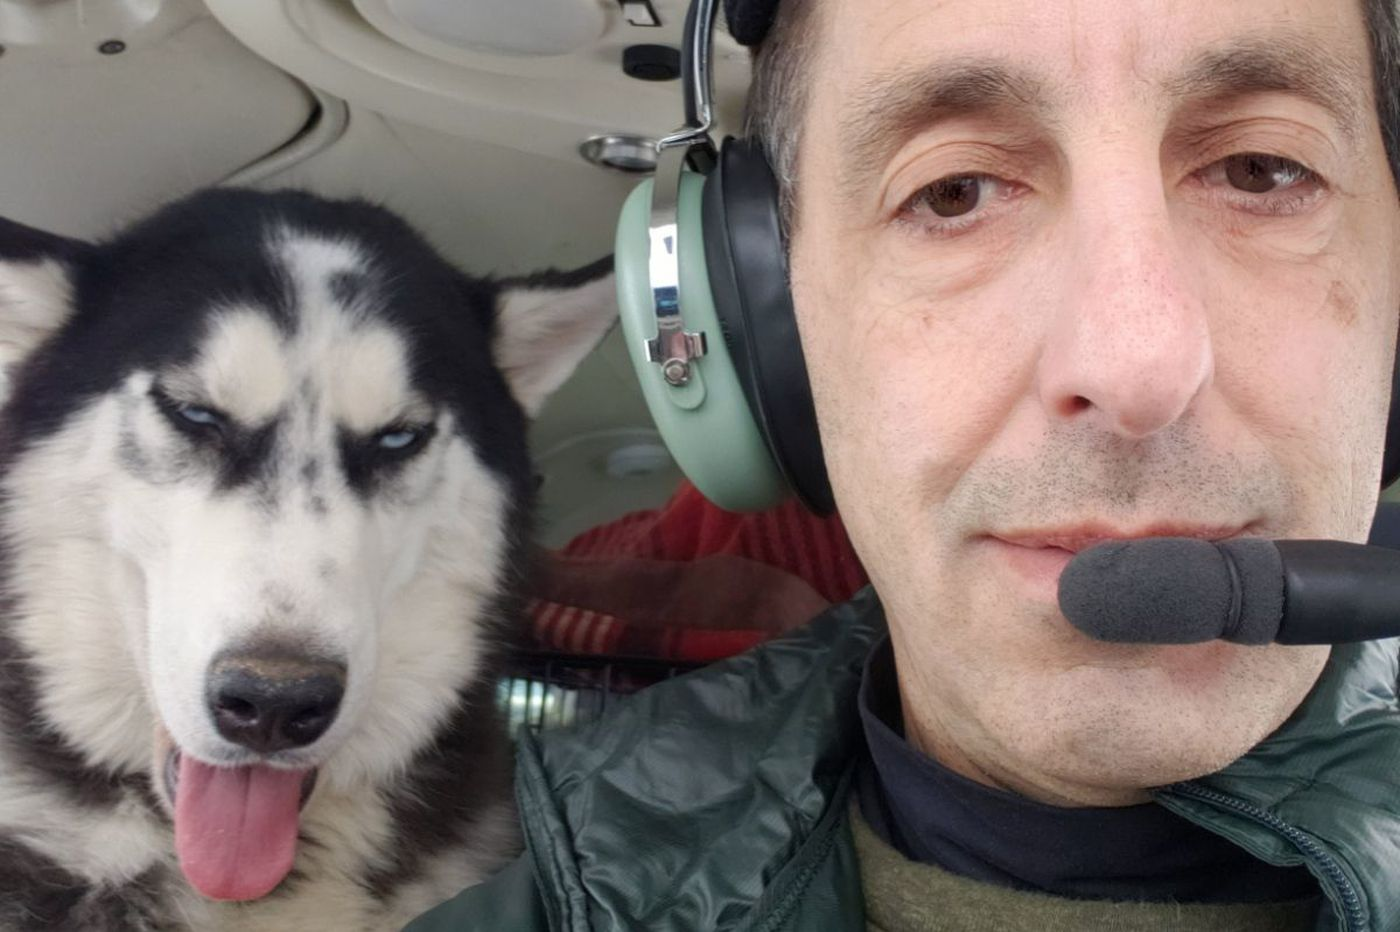 These Philly pilots fly dogs across the East Coast to save their lives. For free.